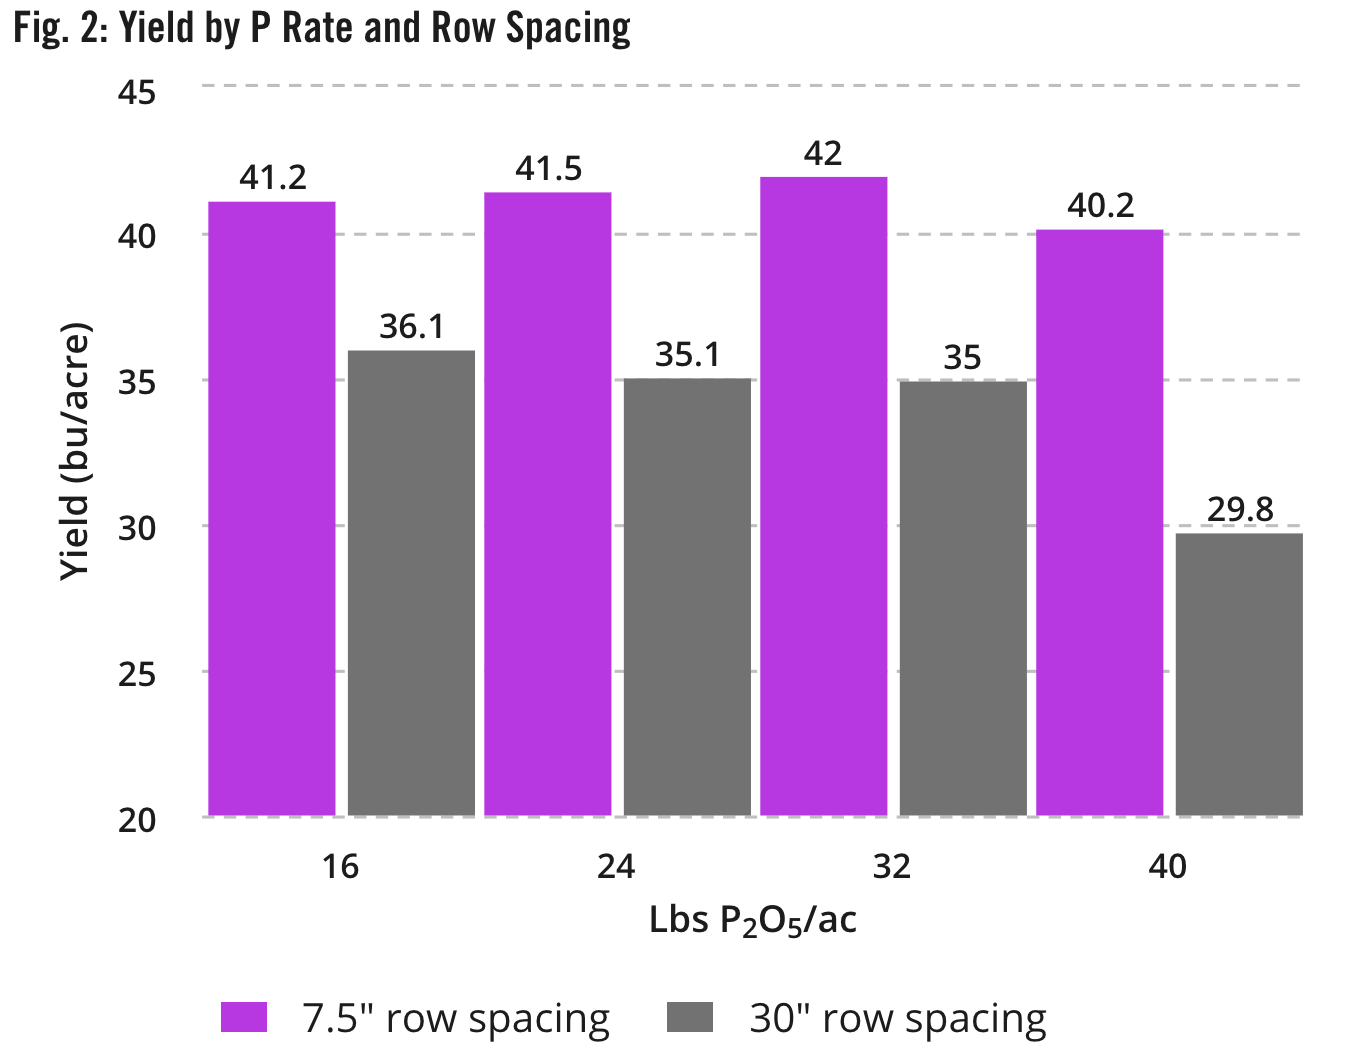 Fig. 2: Yield by P Rate and Row Spacing